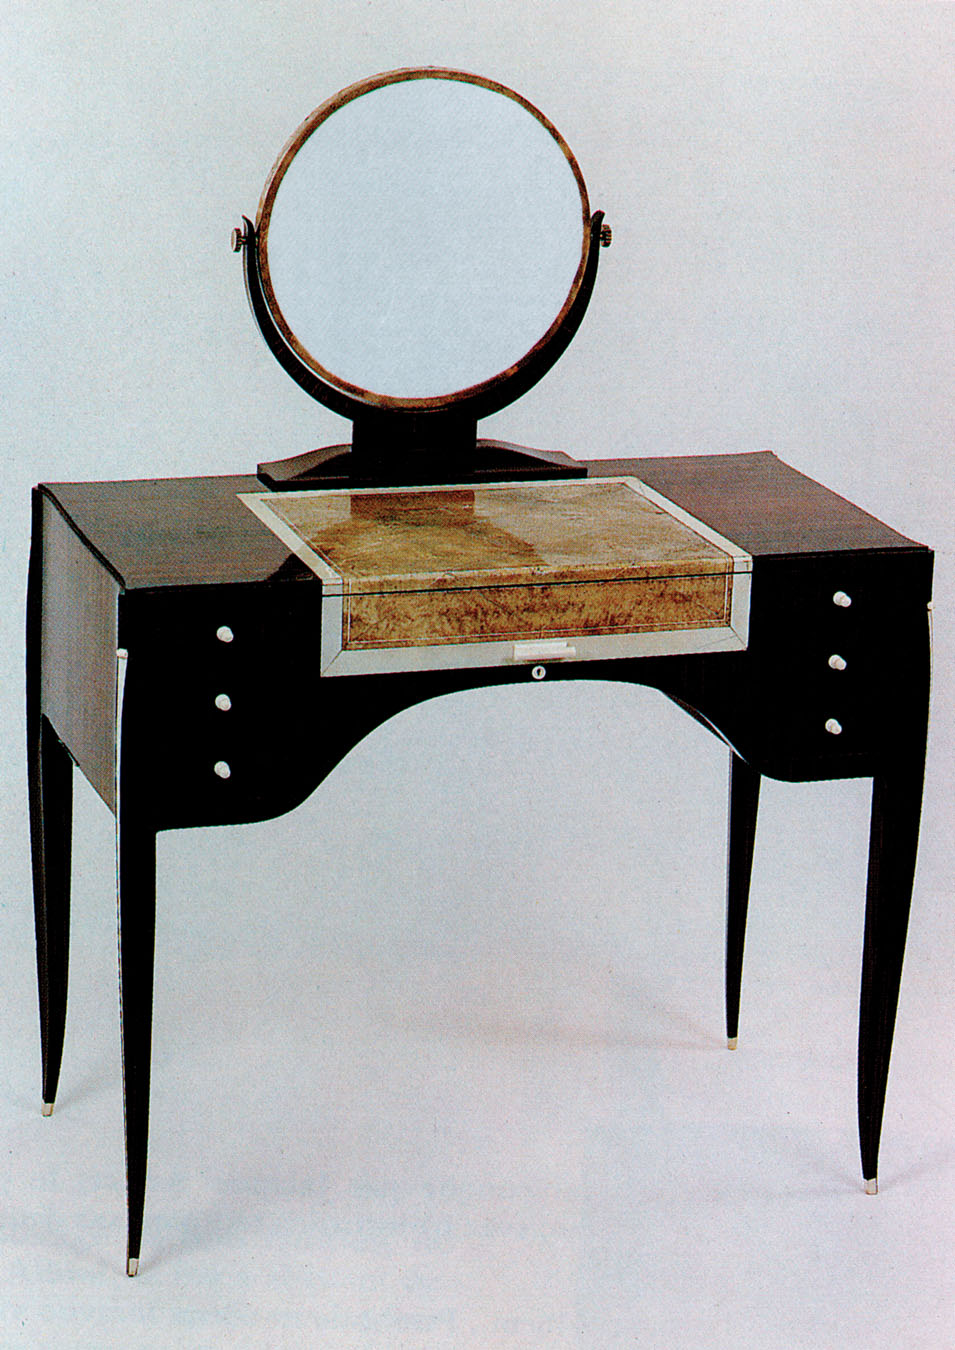 Émile-Jacques Ruhlmann, Dressing Table. Rosewood, Shagreen, Ivory, Mirror. Specific year unknown. Pre-1933.